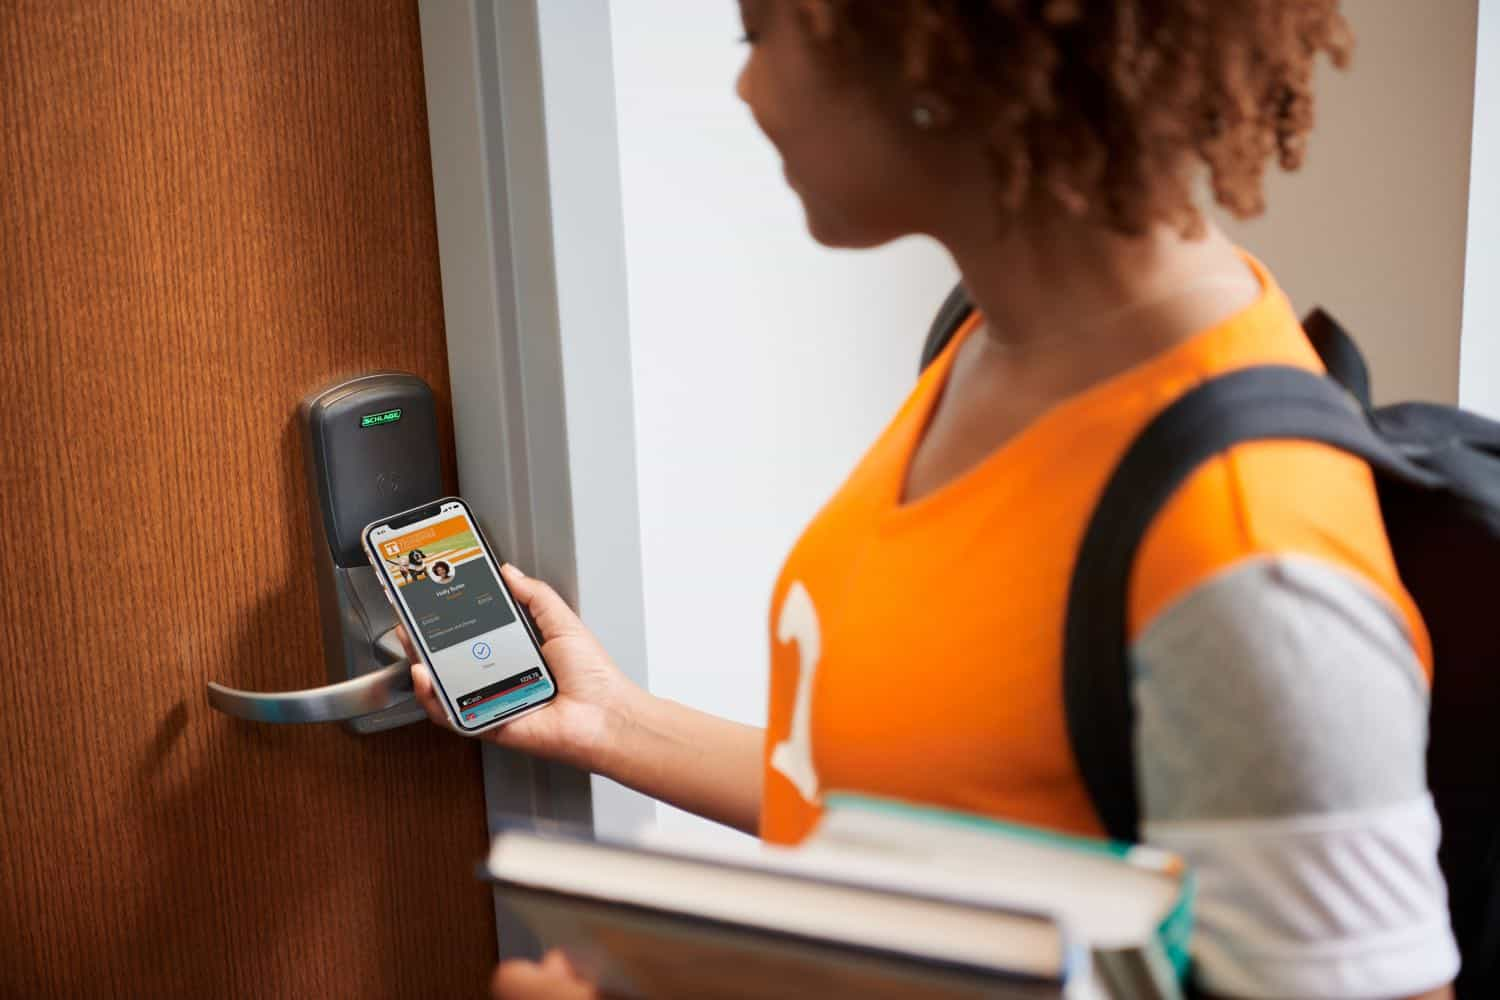 Apple brings student IDs to iPhone and Apple Watch student unlocking door with iPhone 081319